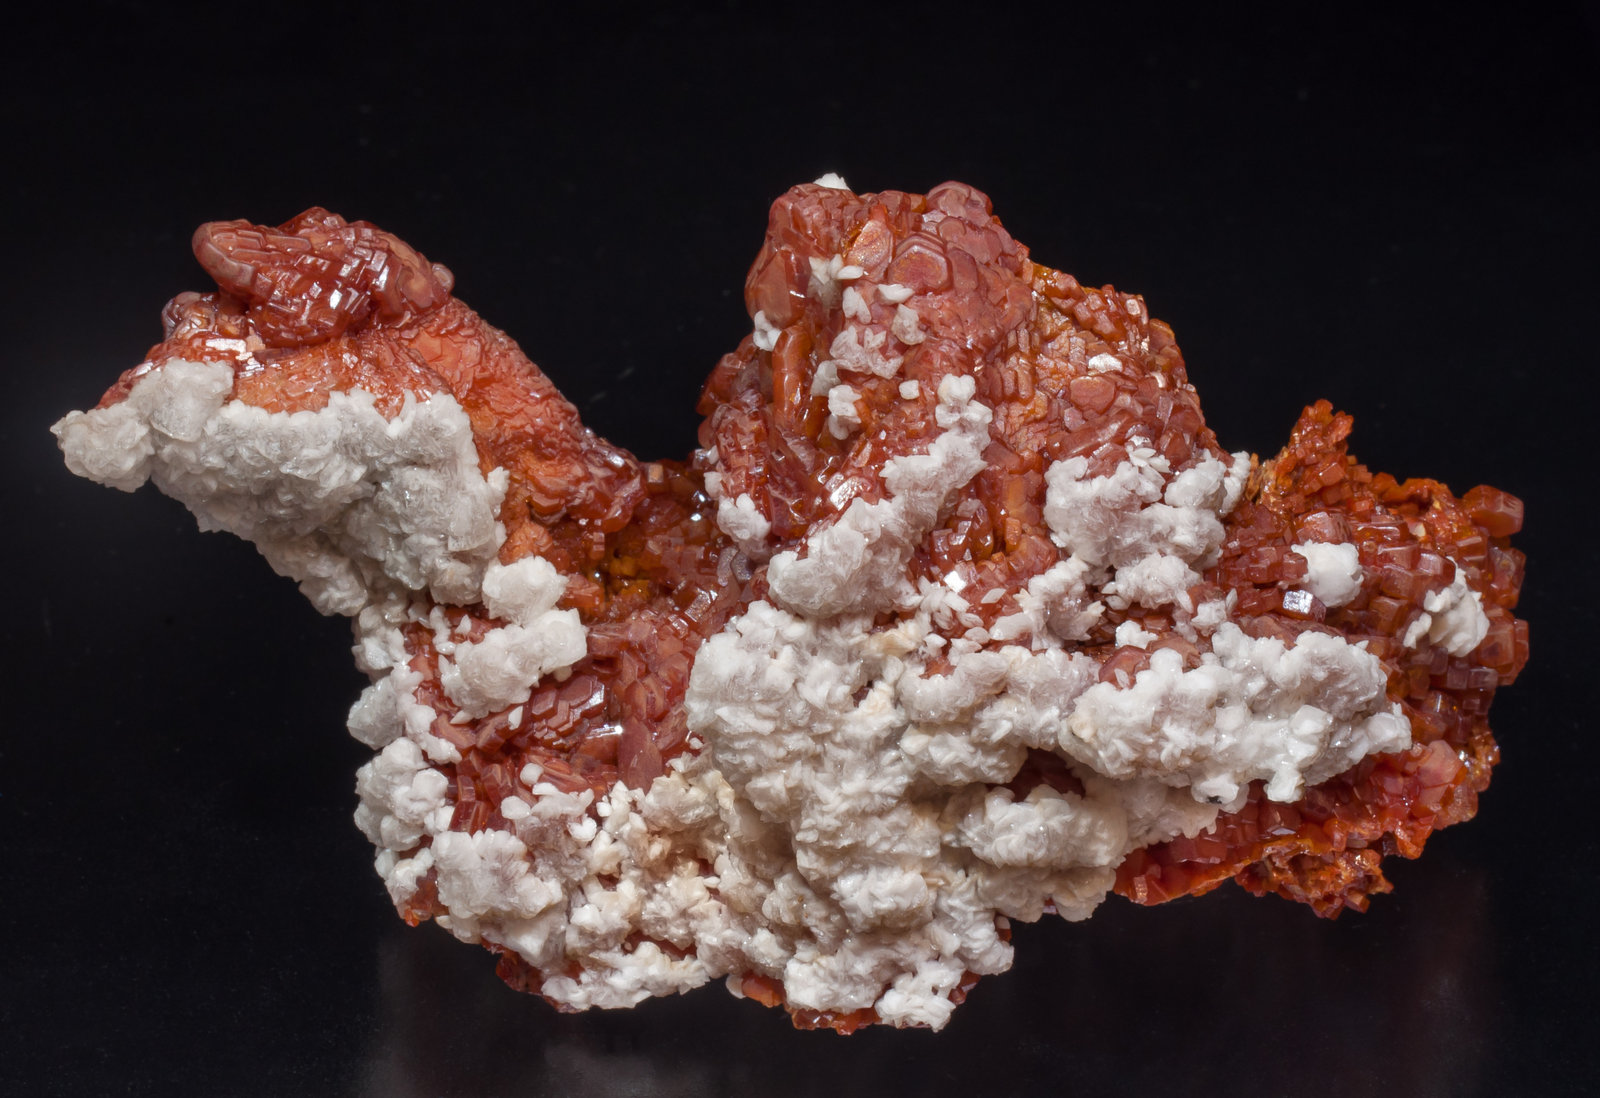 specimens/s_imagesAJ4/Vanadinite-TA50AJ4r.jpg